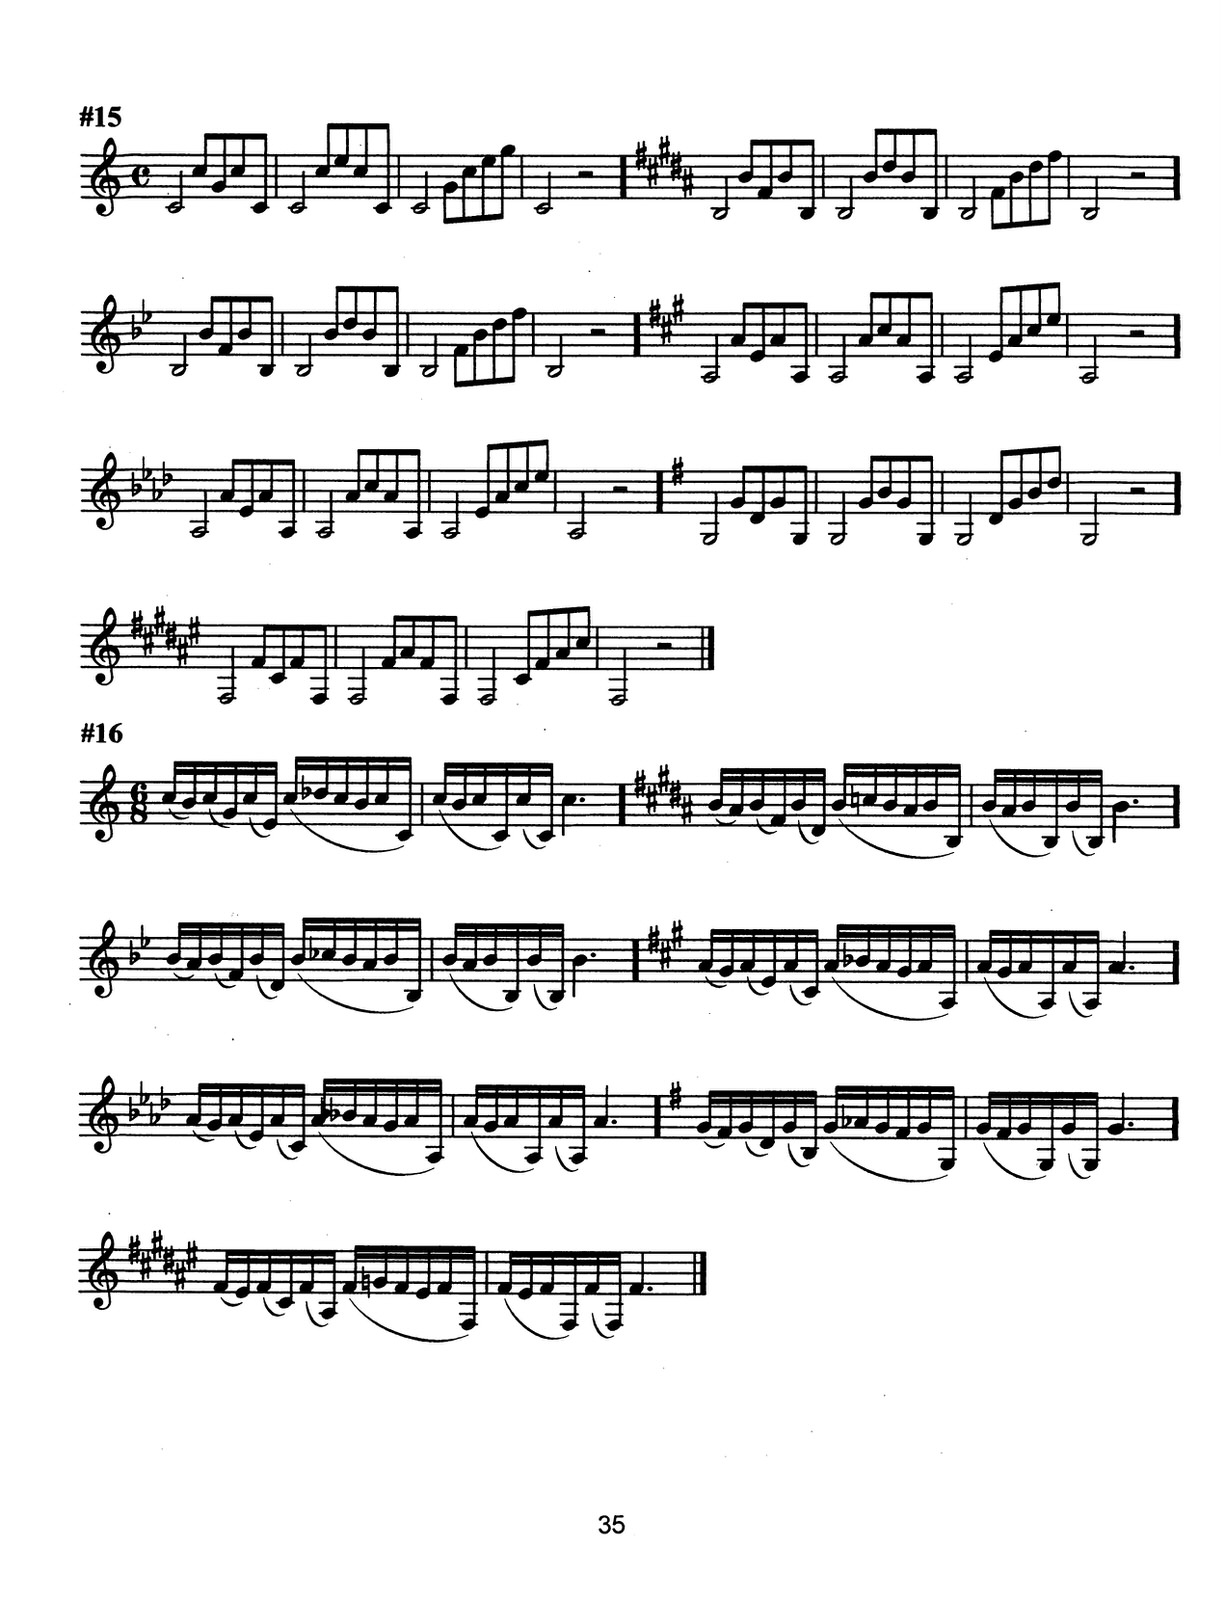 Ponzo, Low Tone Exercise Patterns and Etudes for Trumpet_000039